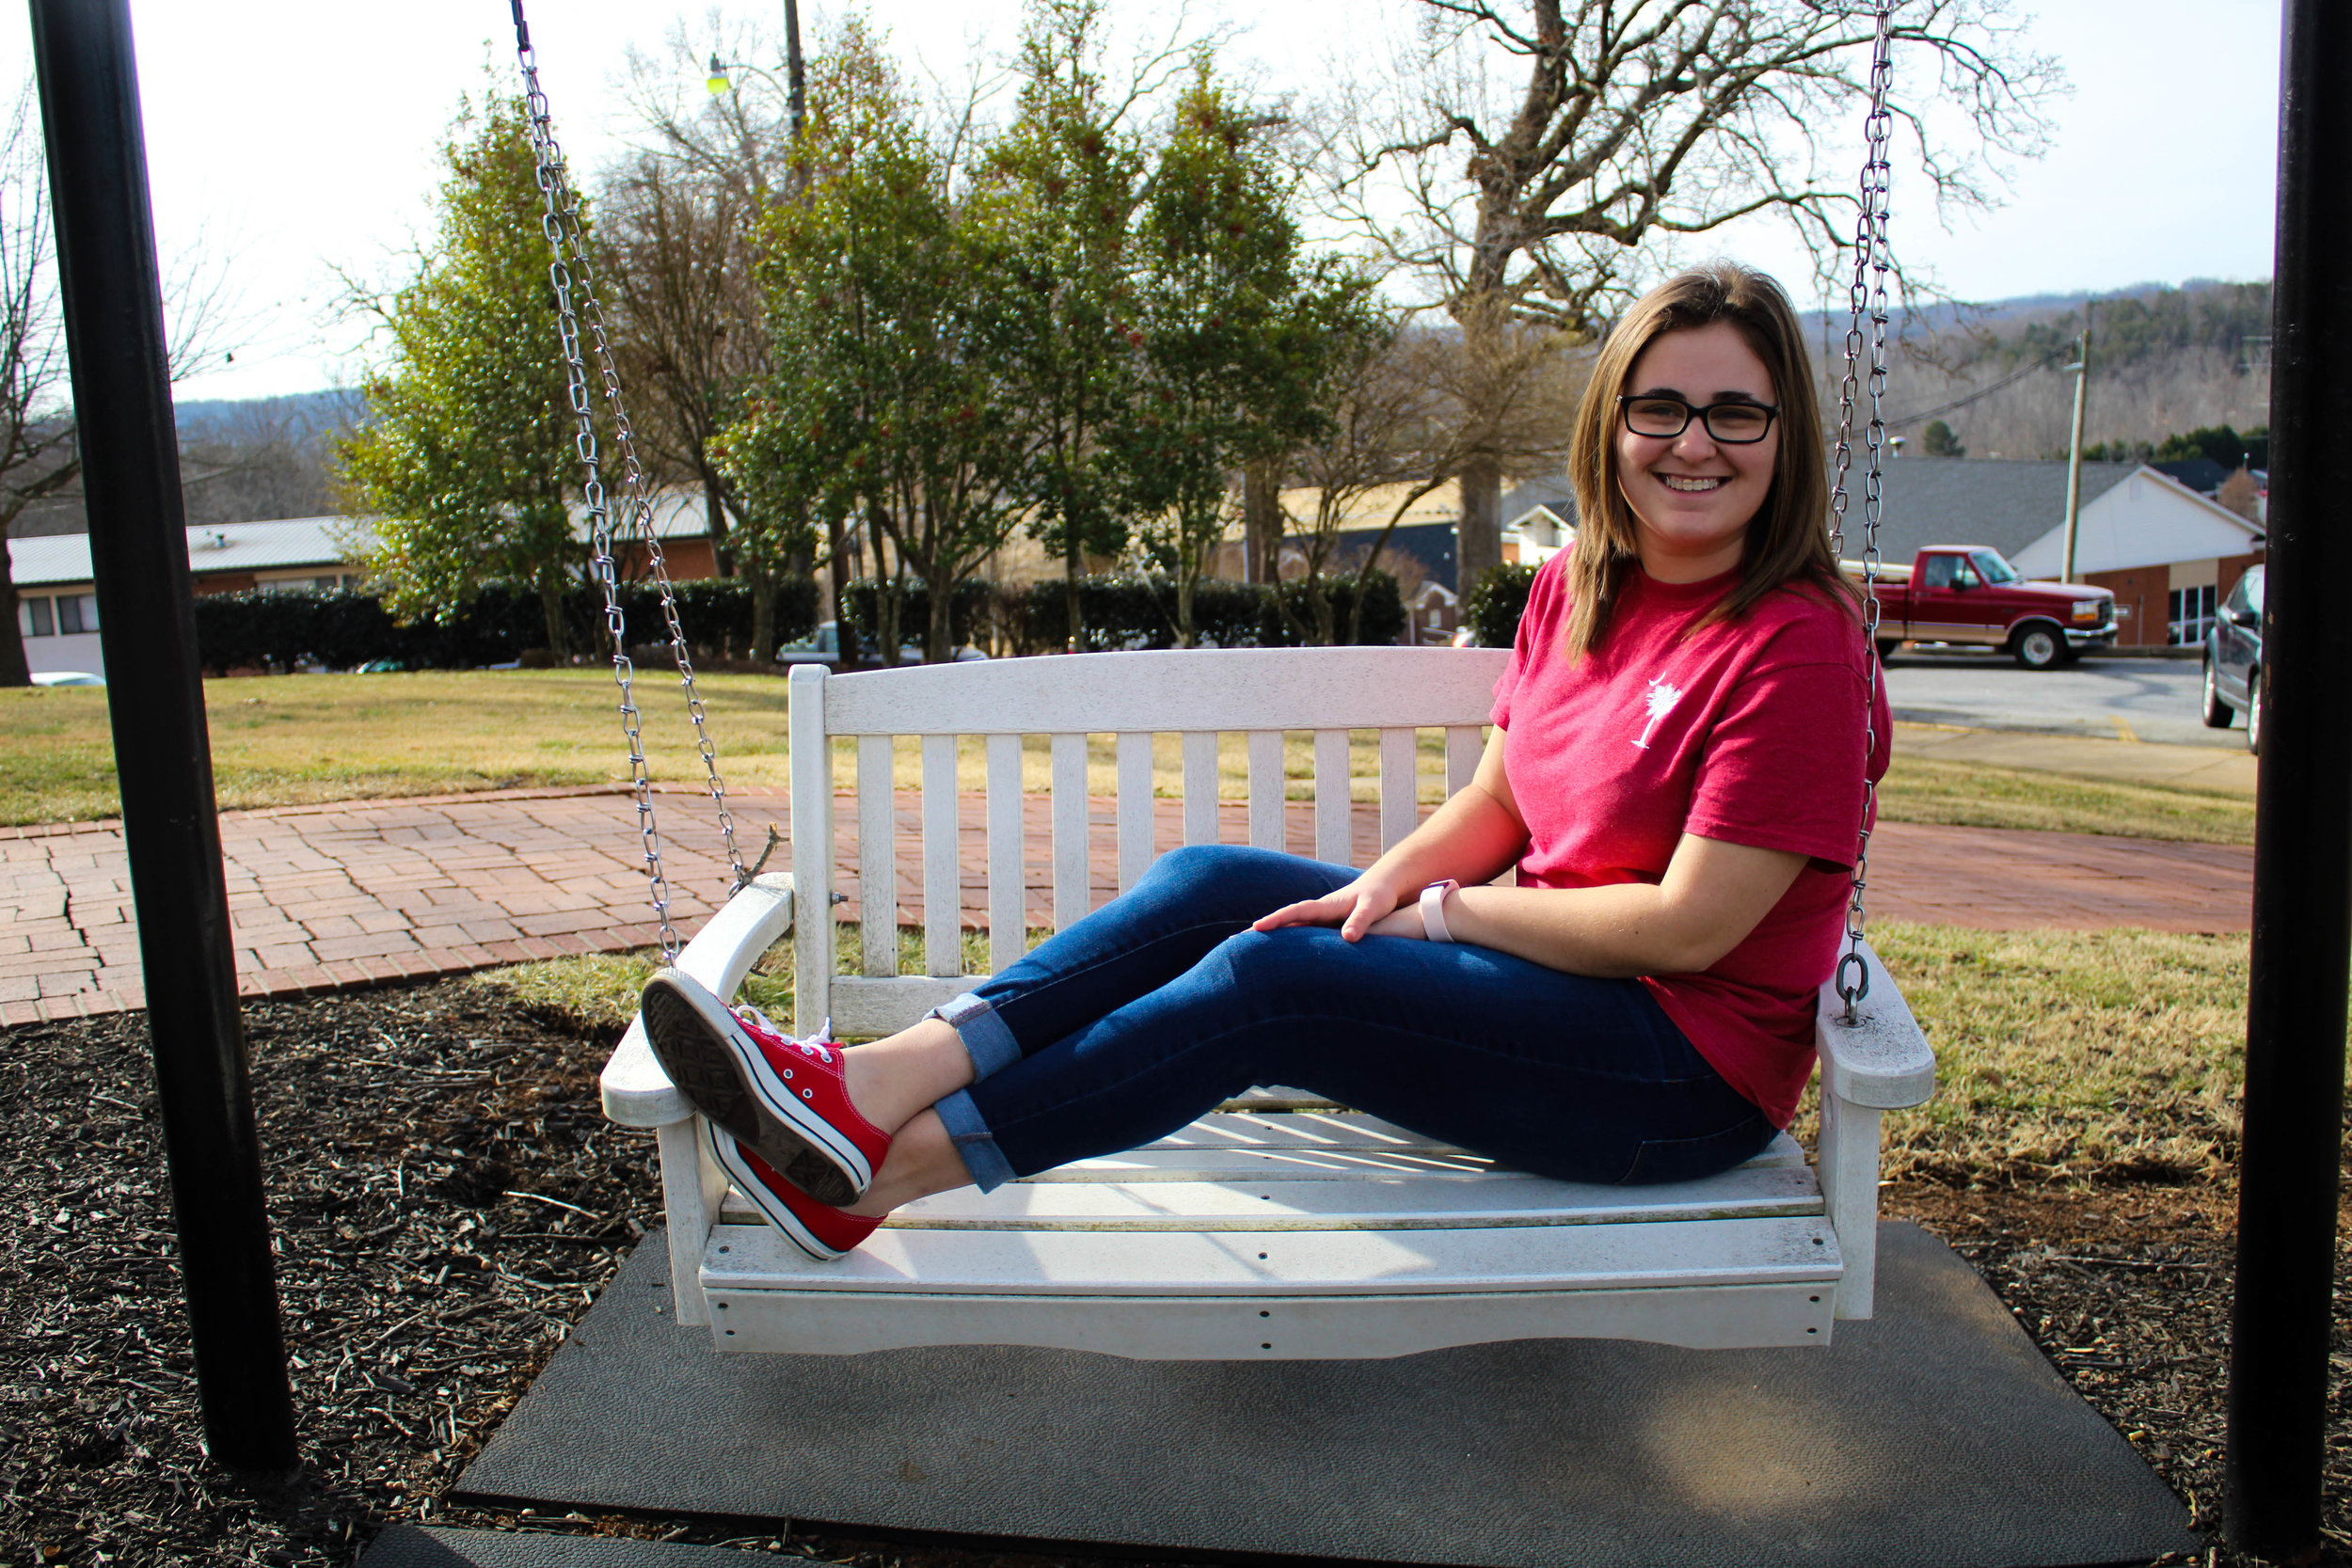 Marissa Holst, a freshman early childhood education major, exhibits her encouragement for the awareness of heart disease by wearing red as she swings outside of Neves.